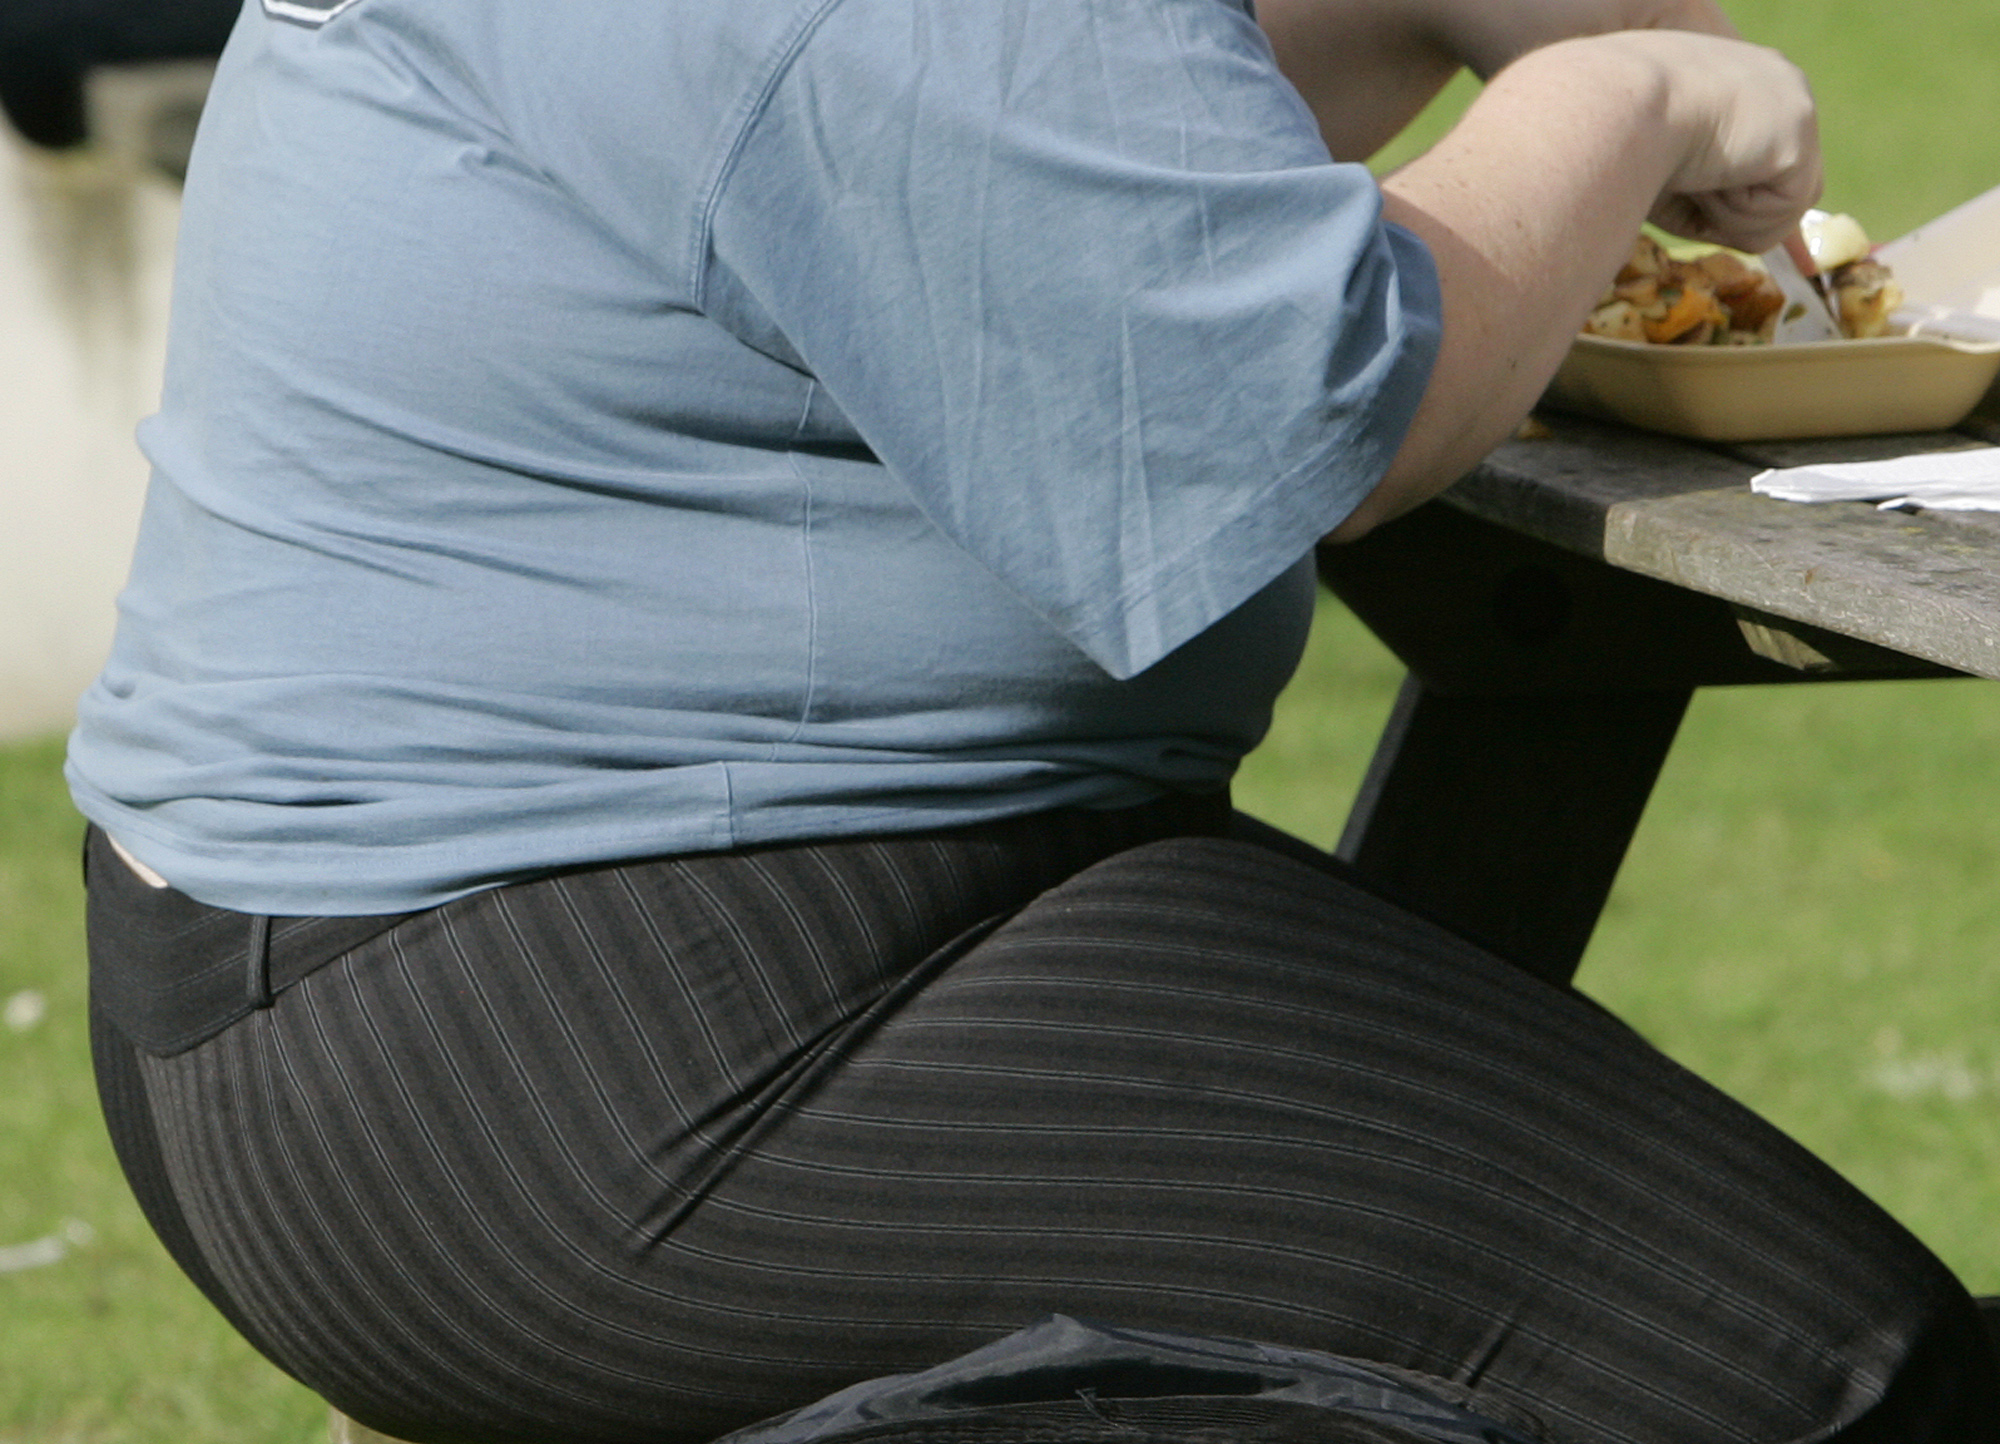 Report says obesity is taking toll on nation's health